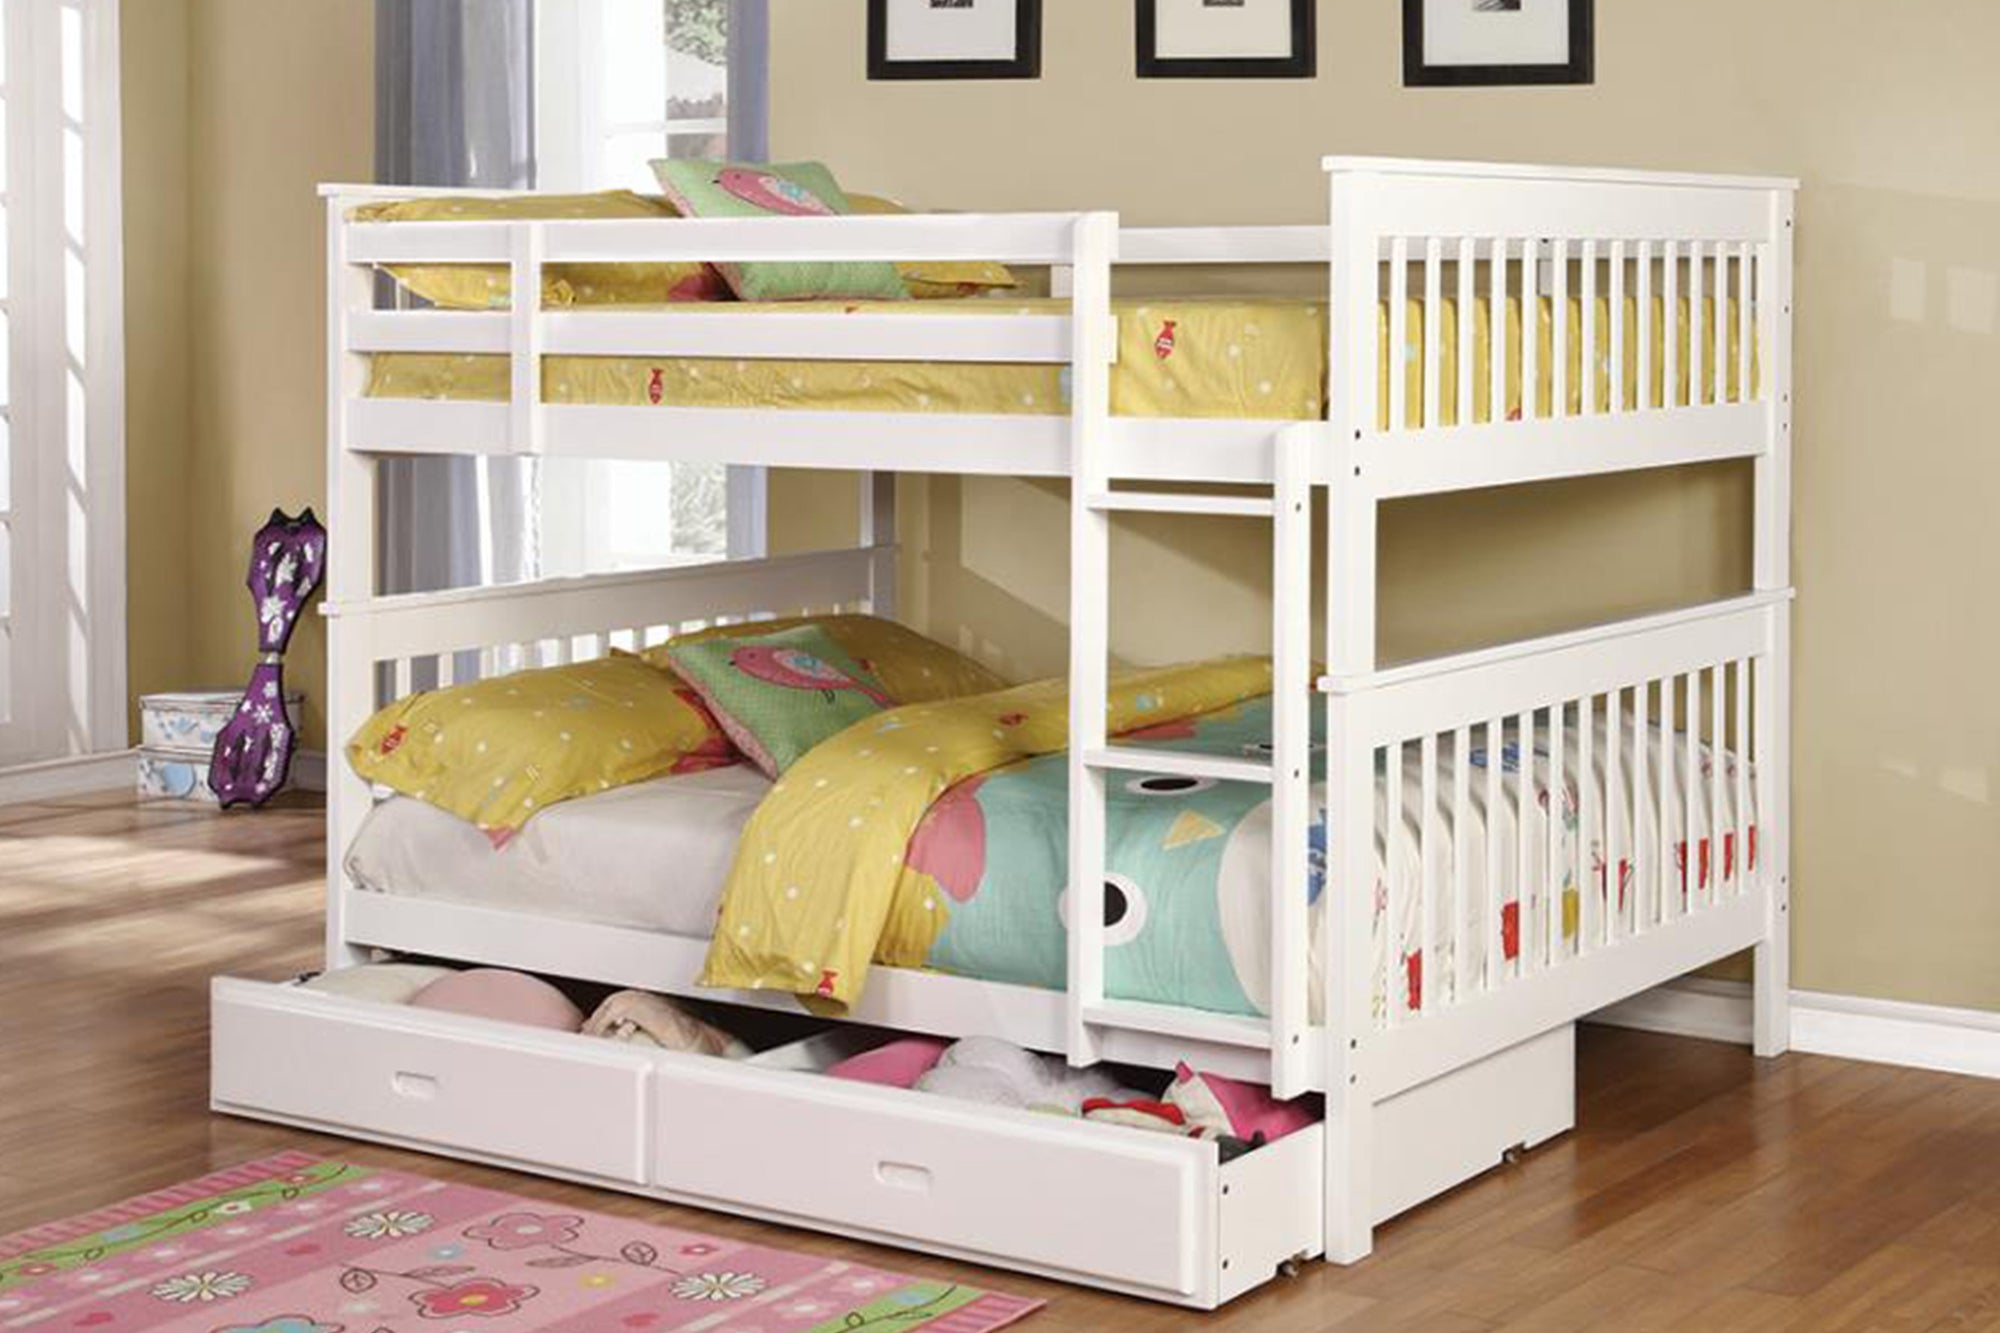 Wood Bunk Bed Model # 18460360